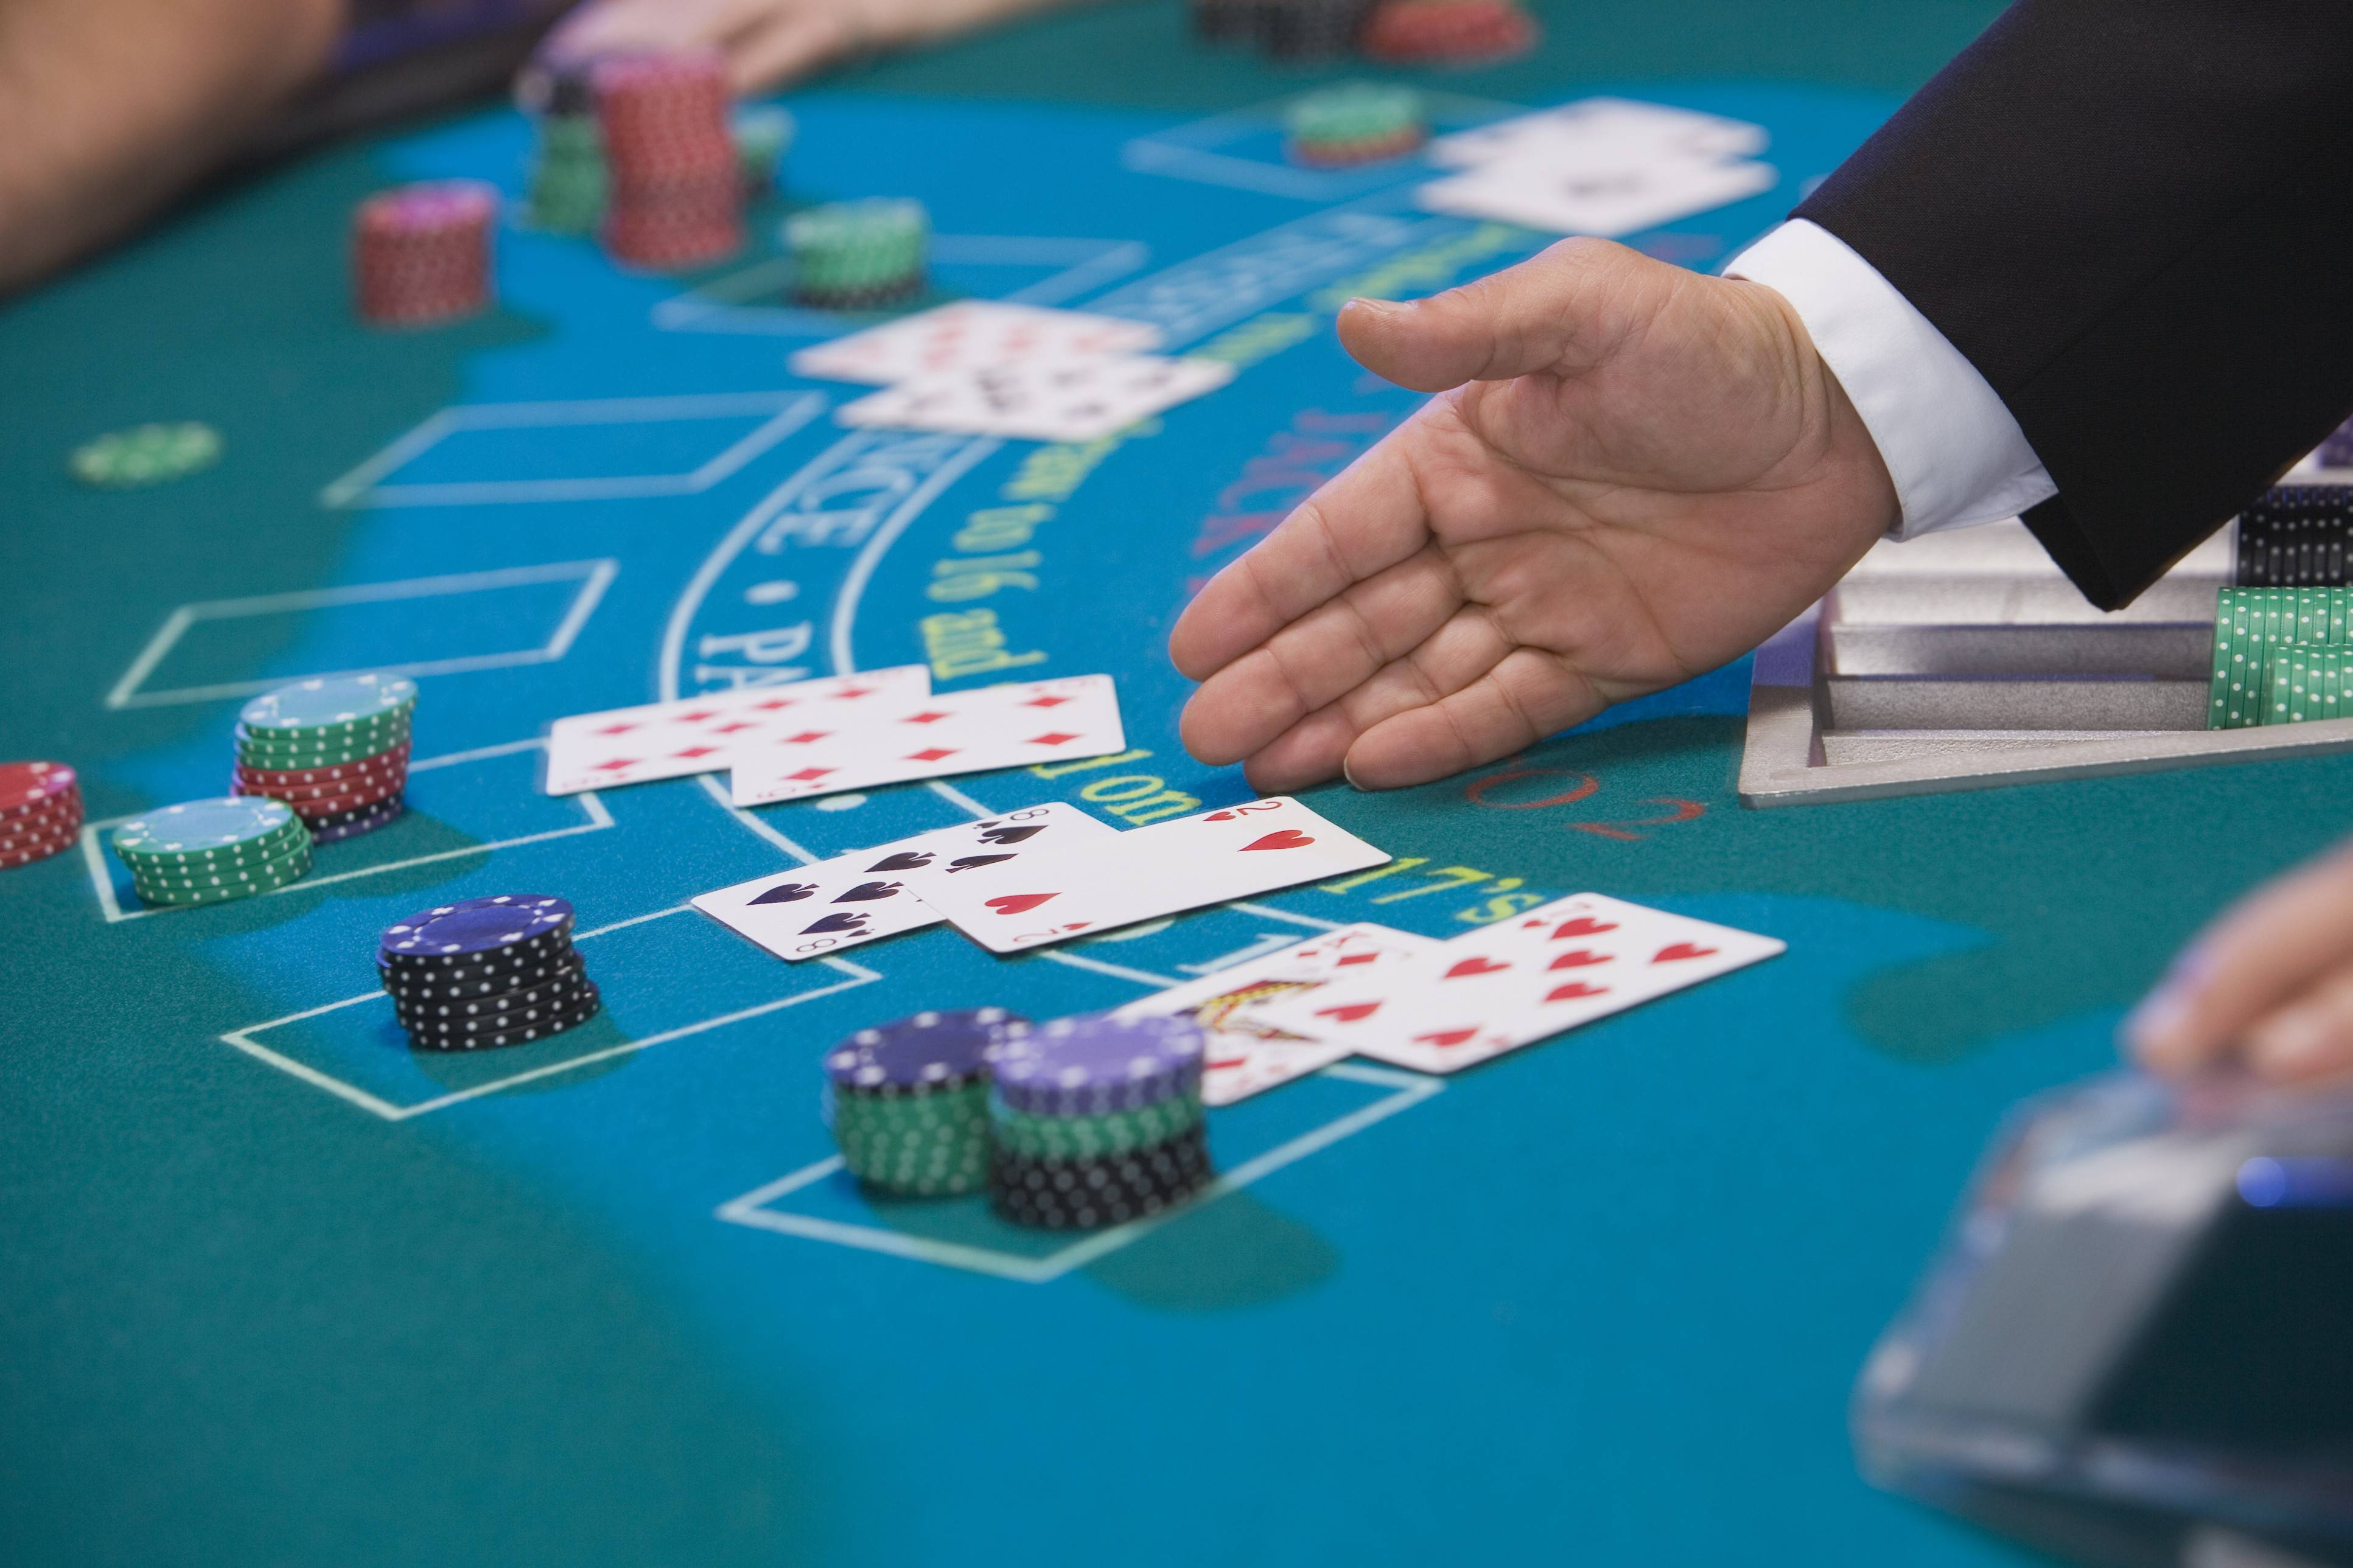 Arlington Park officials want to add table games like blackjack, in addition to slot machines.